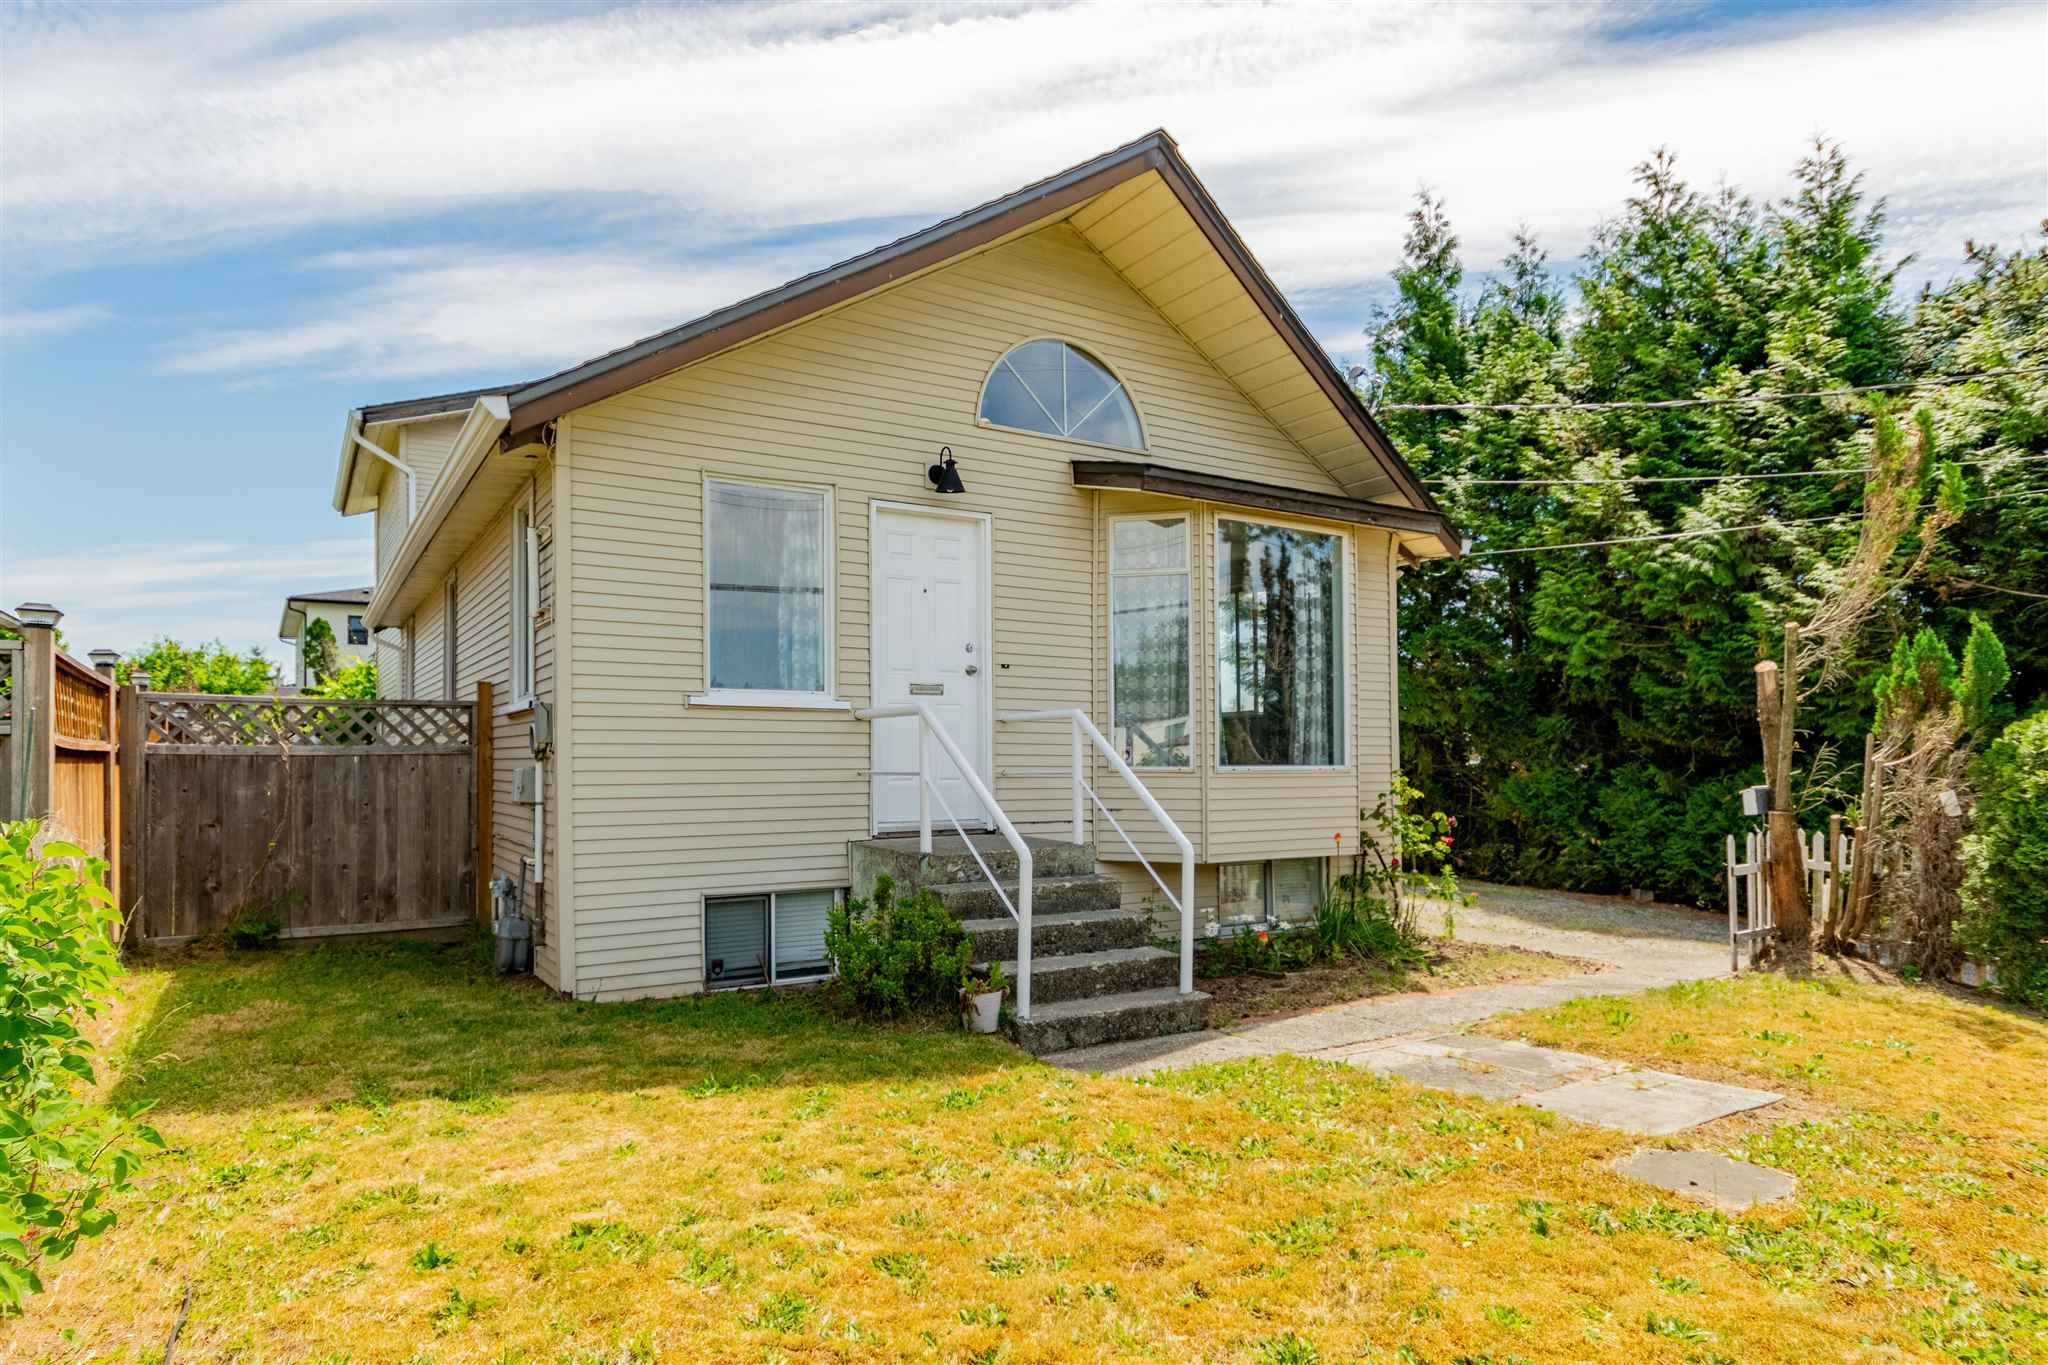 Main Photo: 7522 DUNSMUIR Street in Mission: Mission BC House for sale : MLS®# R2597062